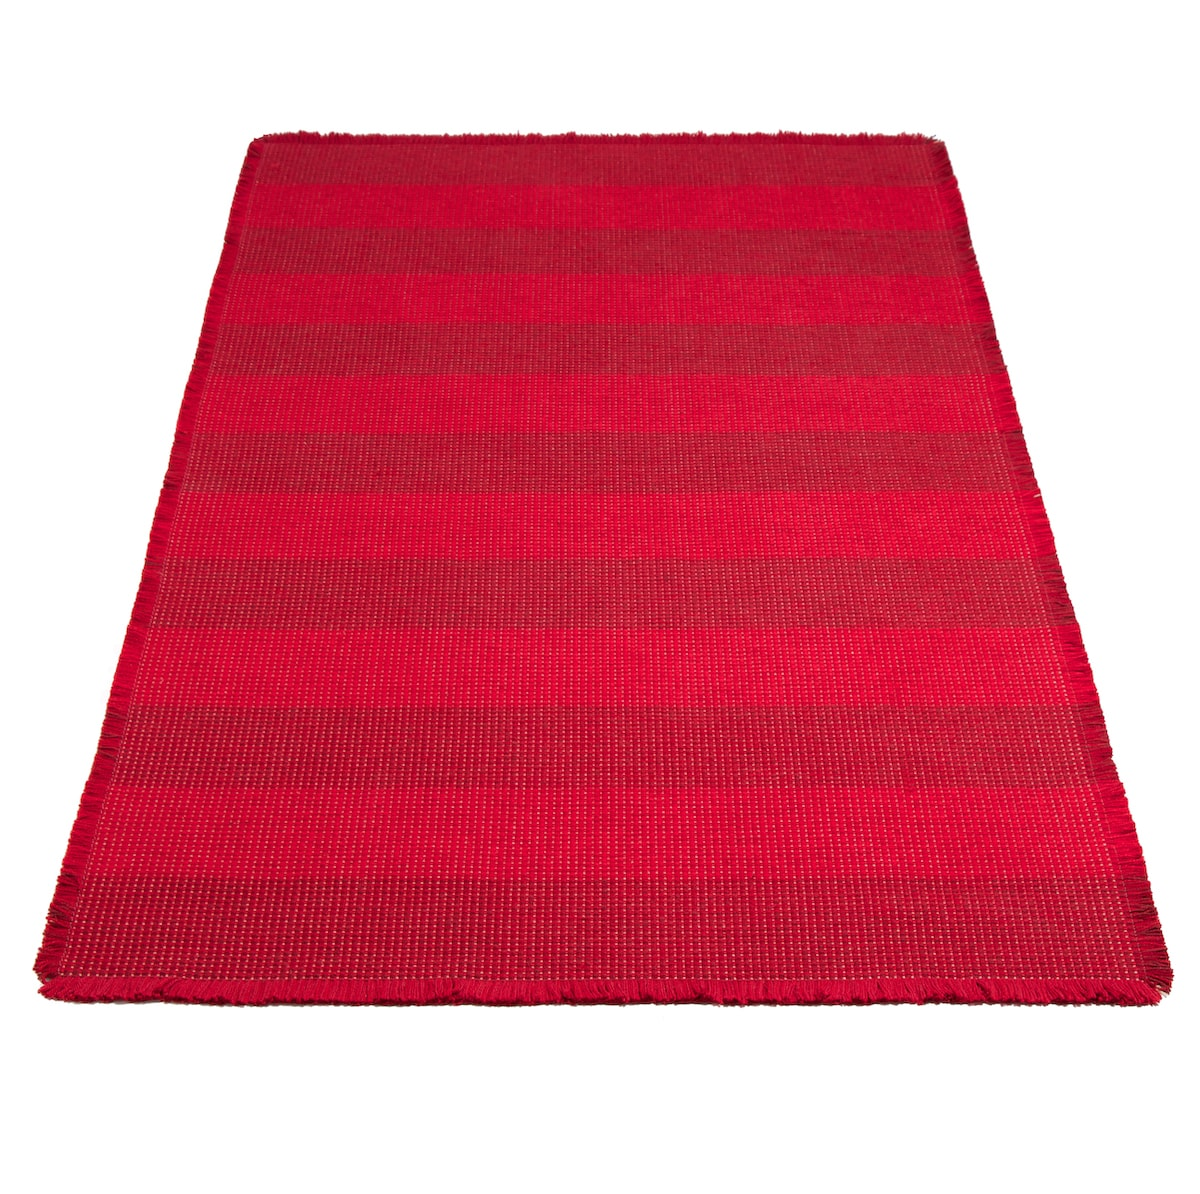 Brooklyn Crimson Rug by Roger Oates for AUTHOR's collection of British-made homeware